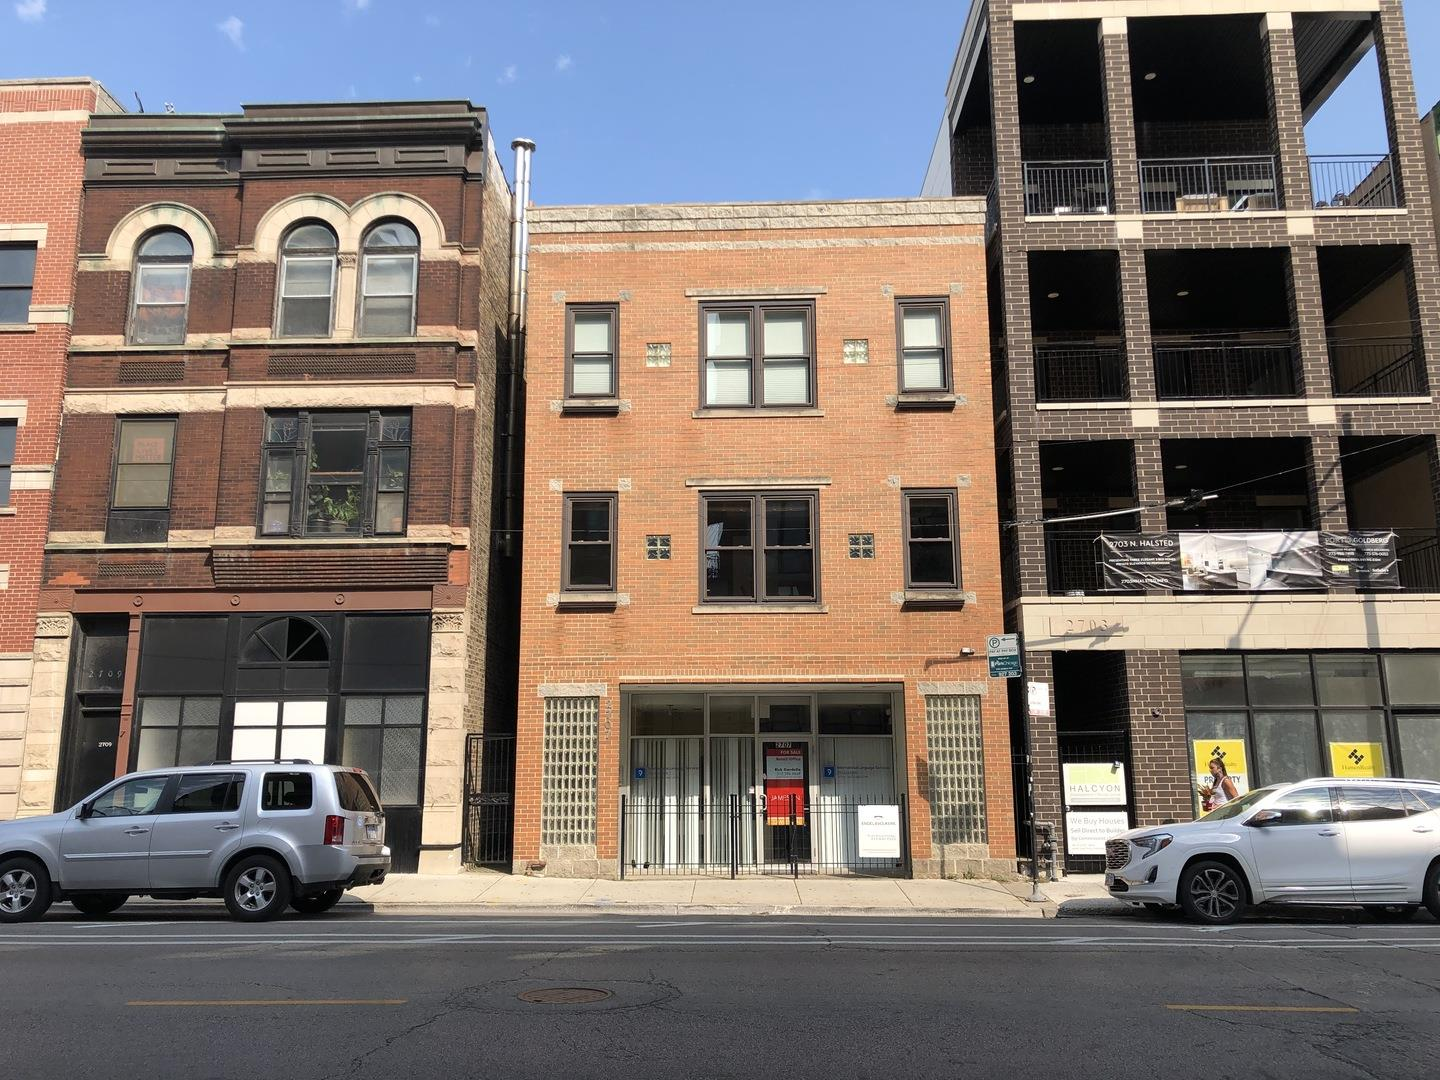 2707 N Halsted Street #2, Chicago, IL 60614 - #: 10929151